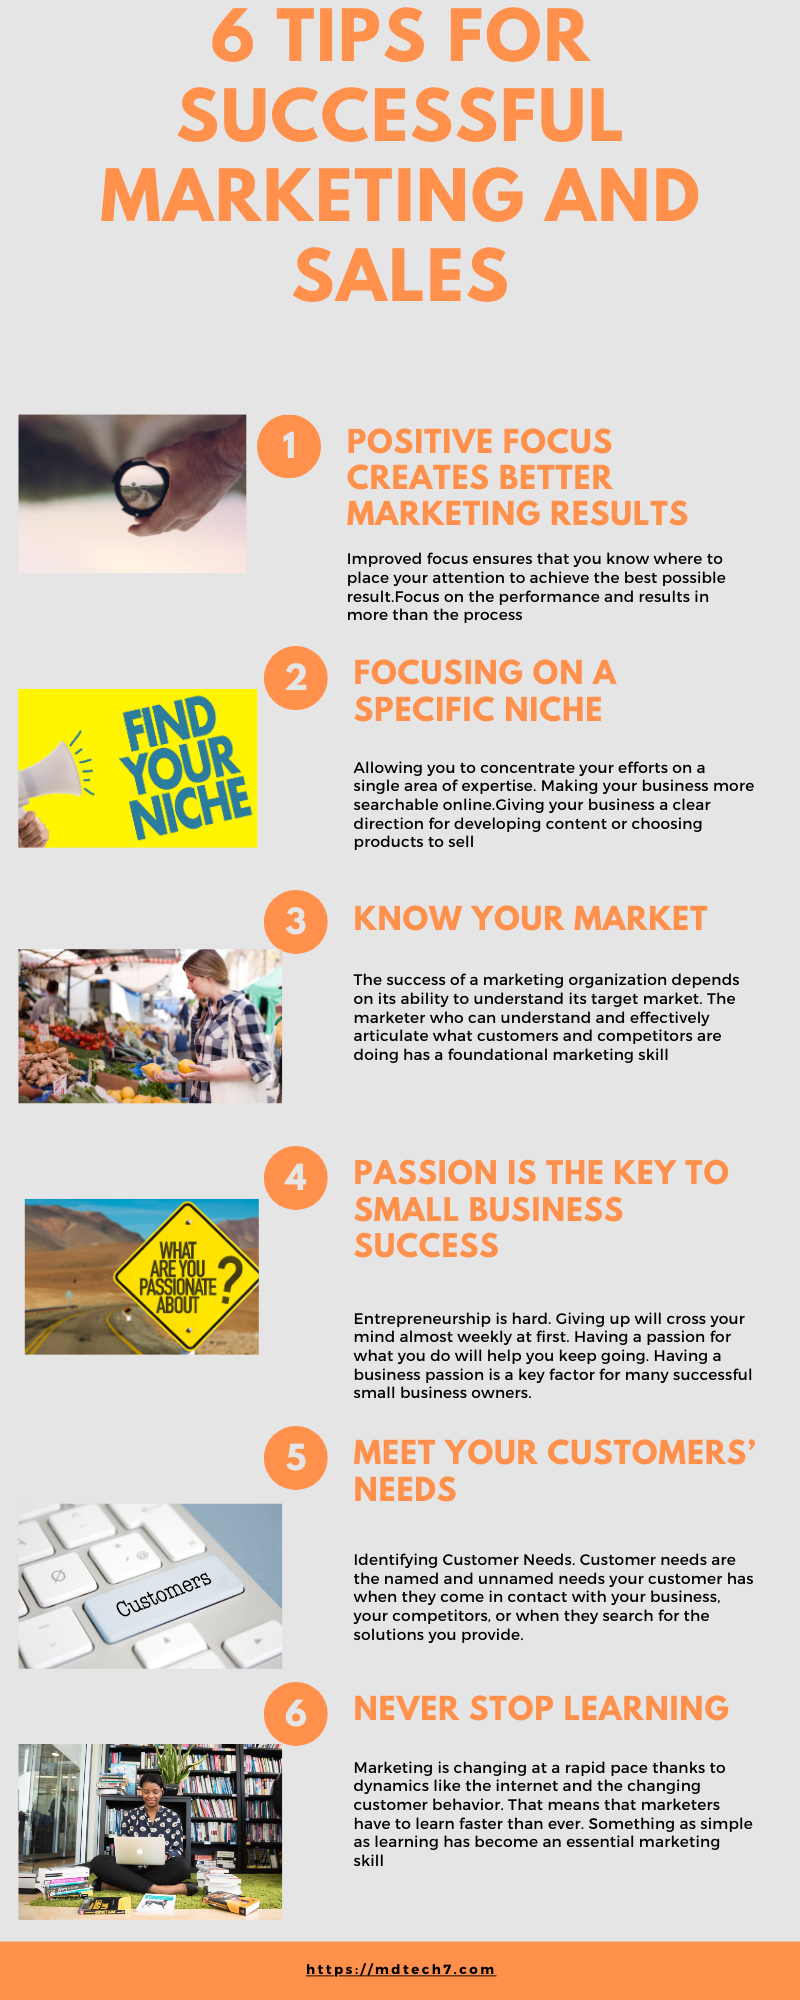 New small companies: 6 Tips for marketing success